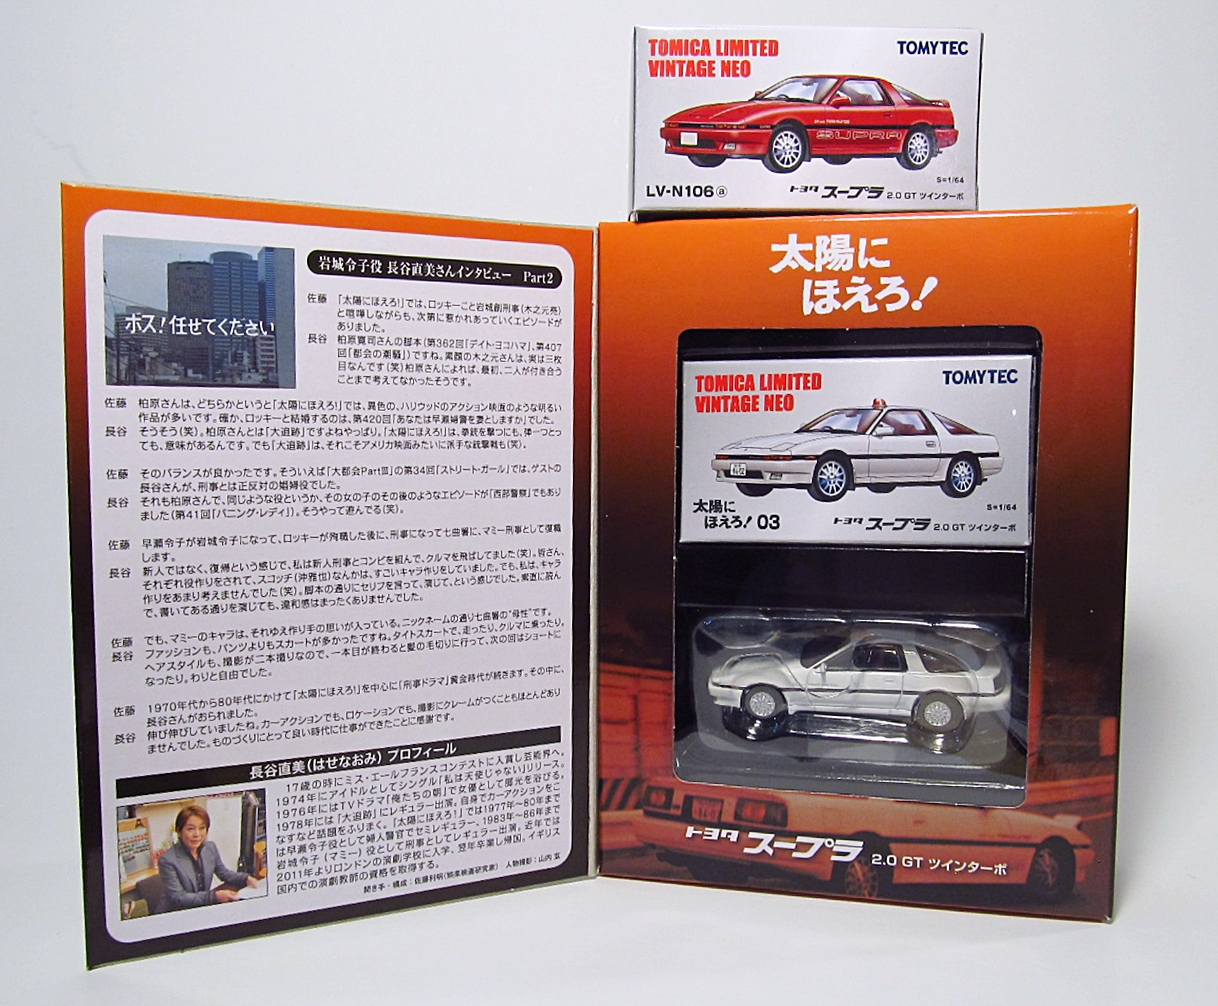 610448f01e7d Tomica Limited Vintage Neo  LV-N106a Toyota Supra 2.0 GT Twin Turbo +  太陽にほえろ! 03(Taiyo ni Hoero) Unmarked Police Version